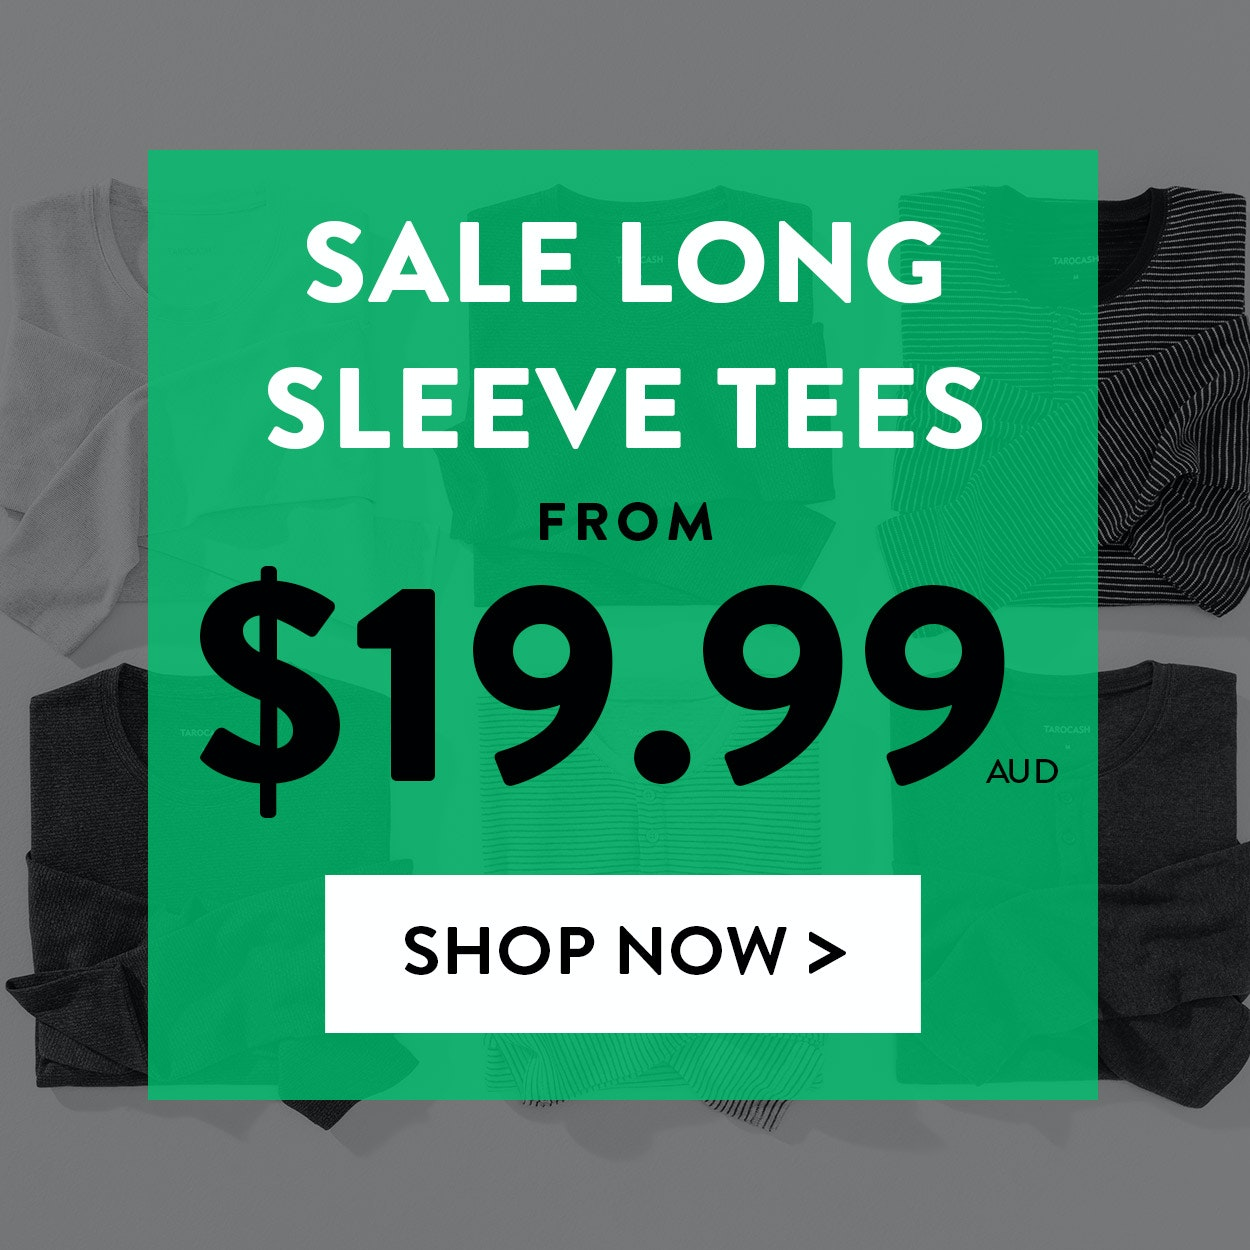 Sale Long Sleeve Tees